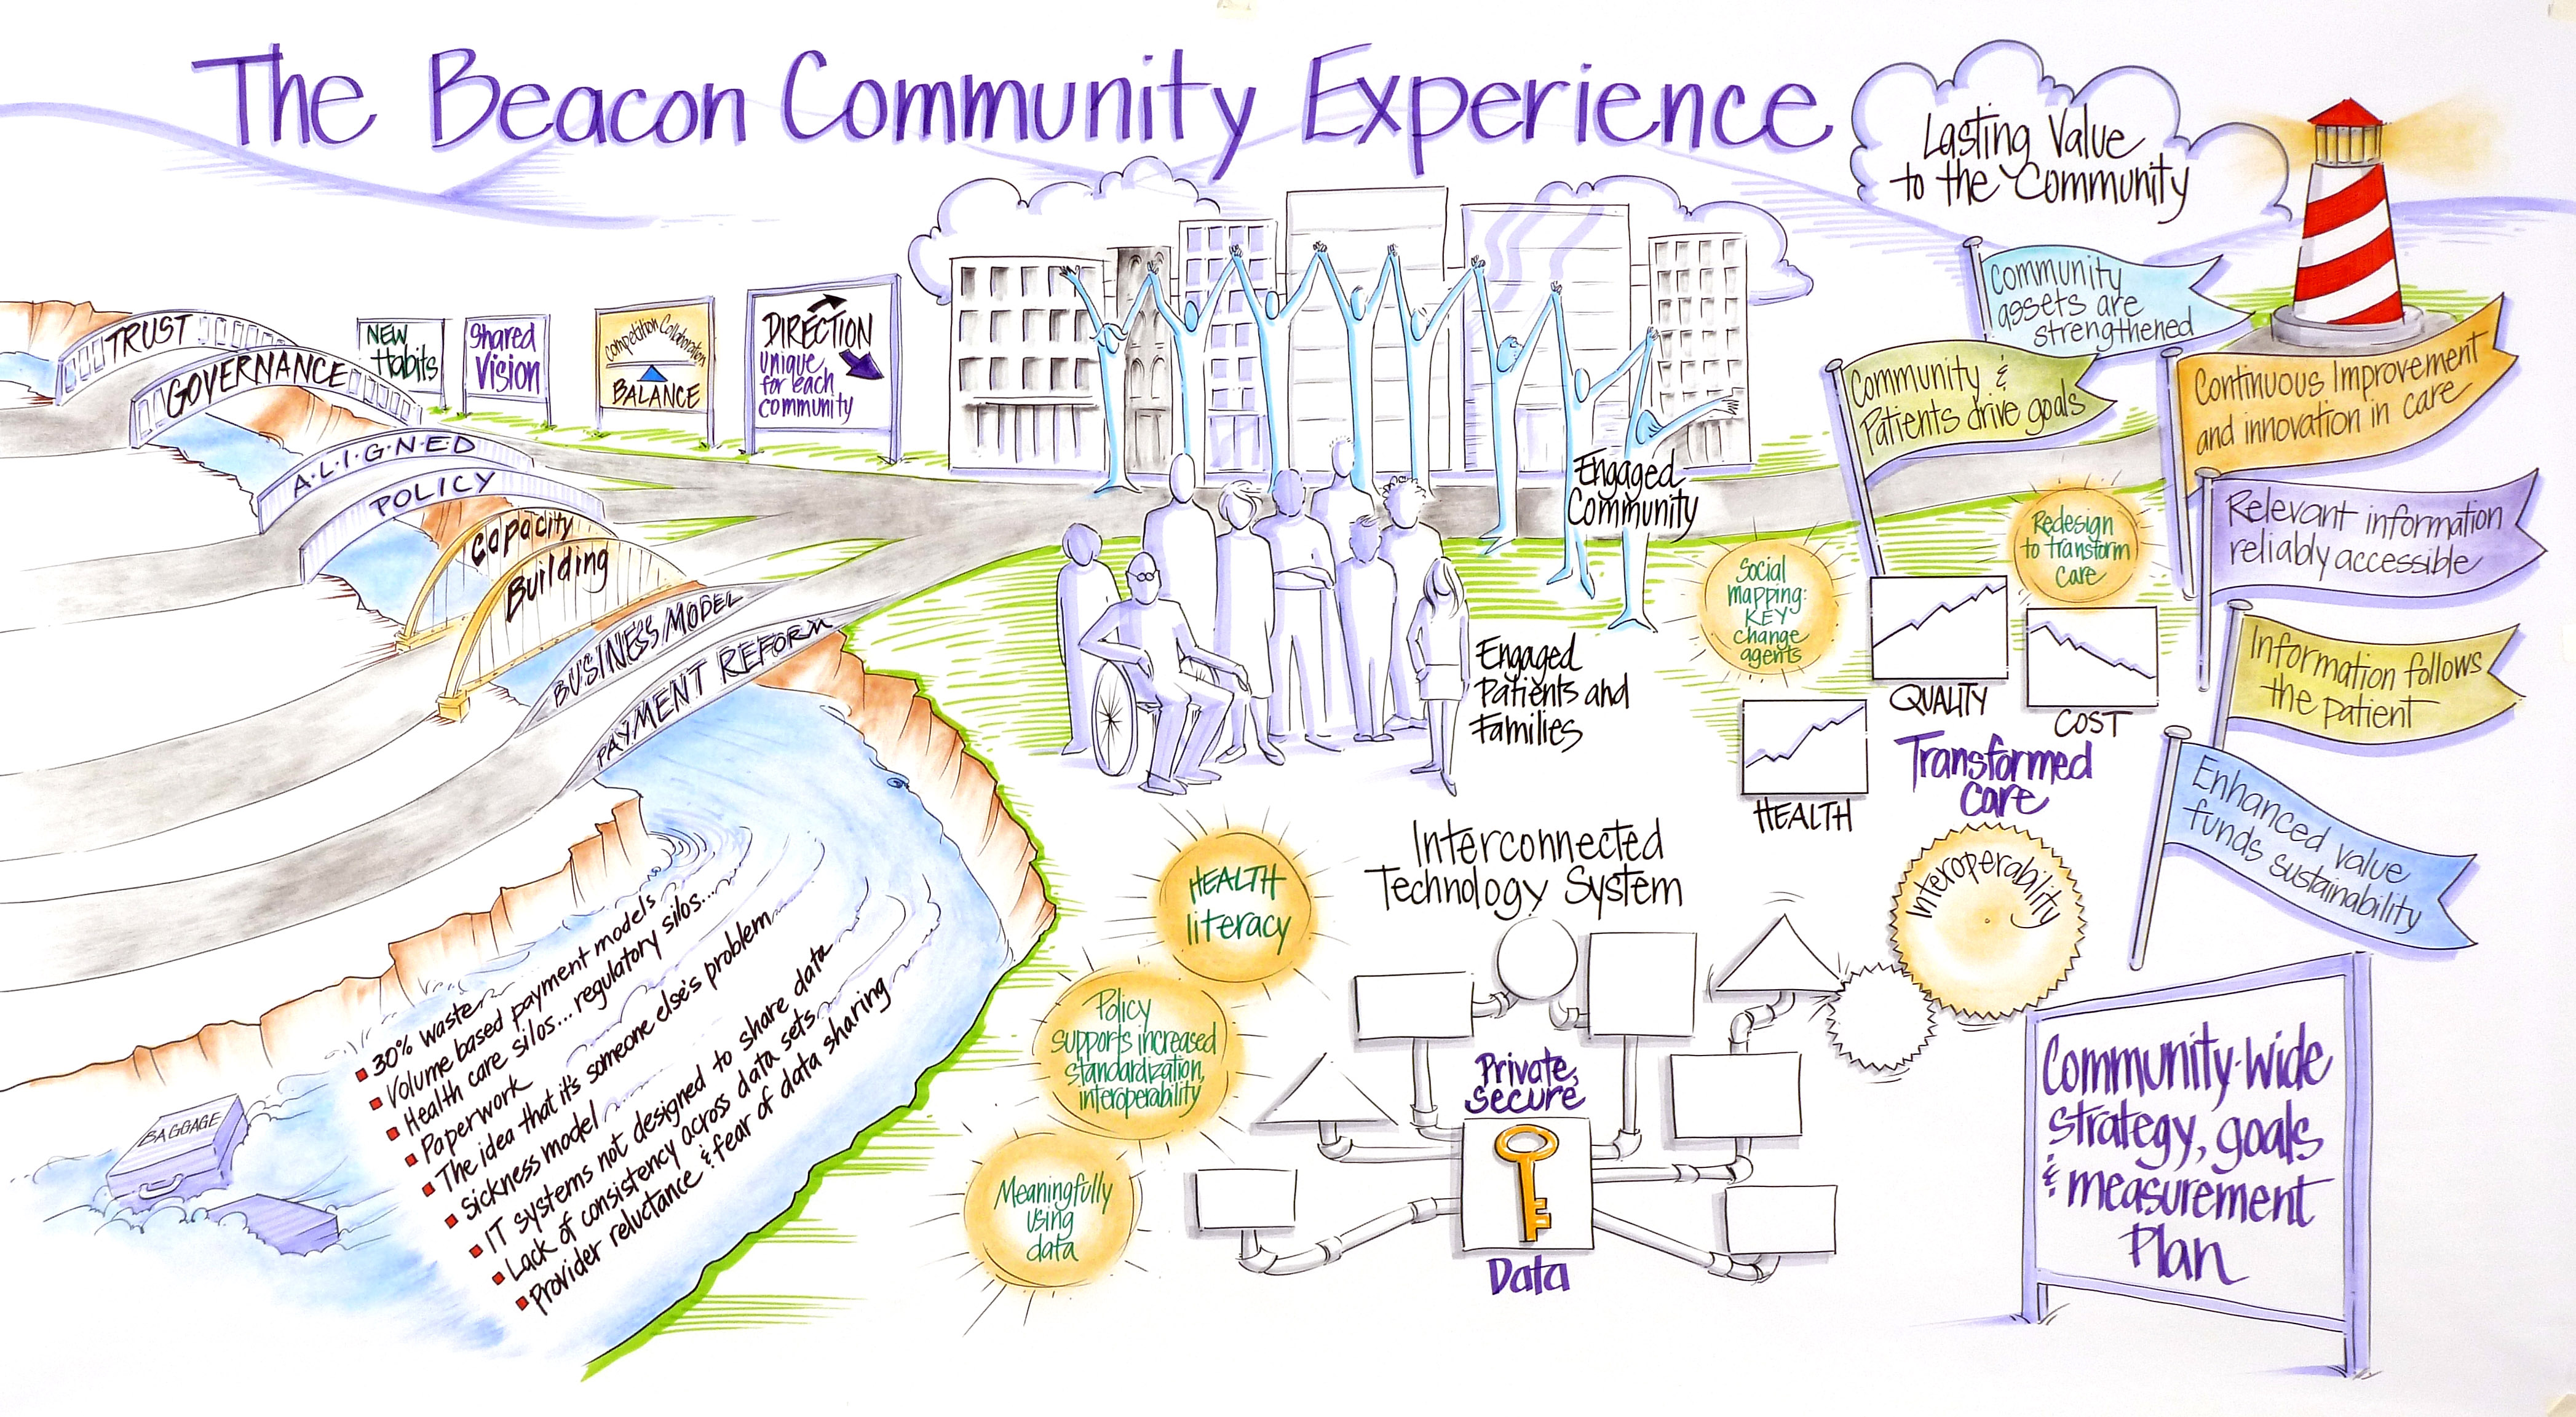 Vision for future of community healthcare